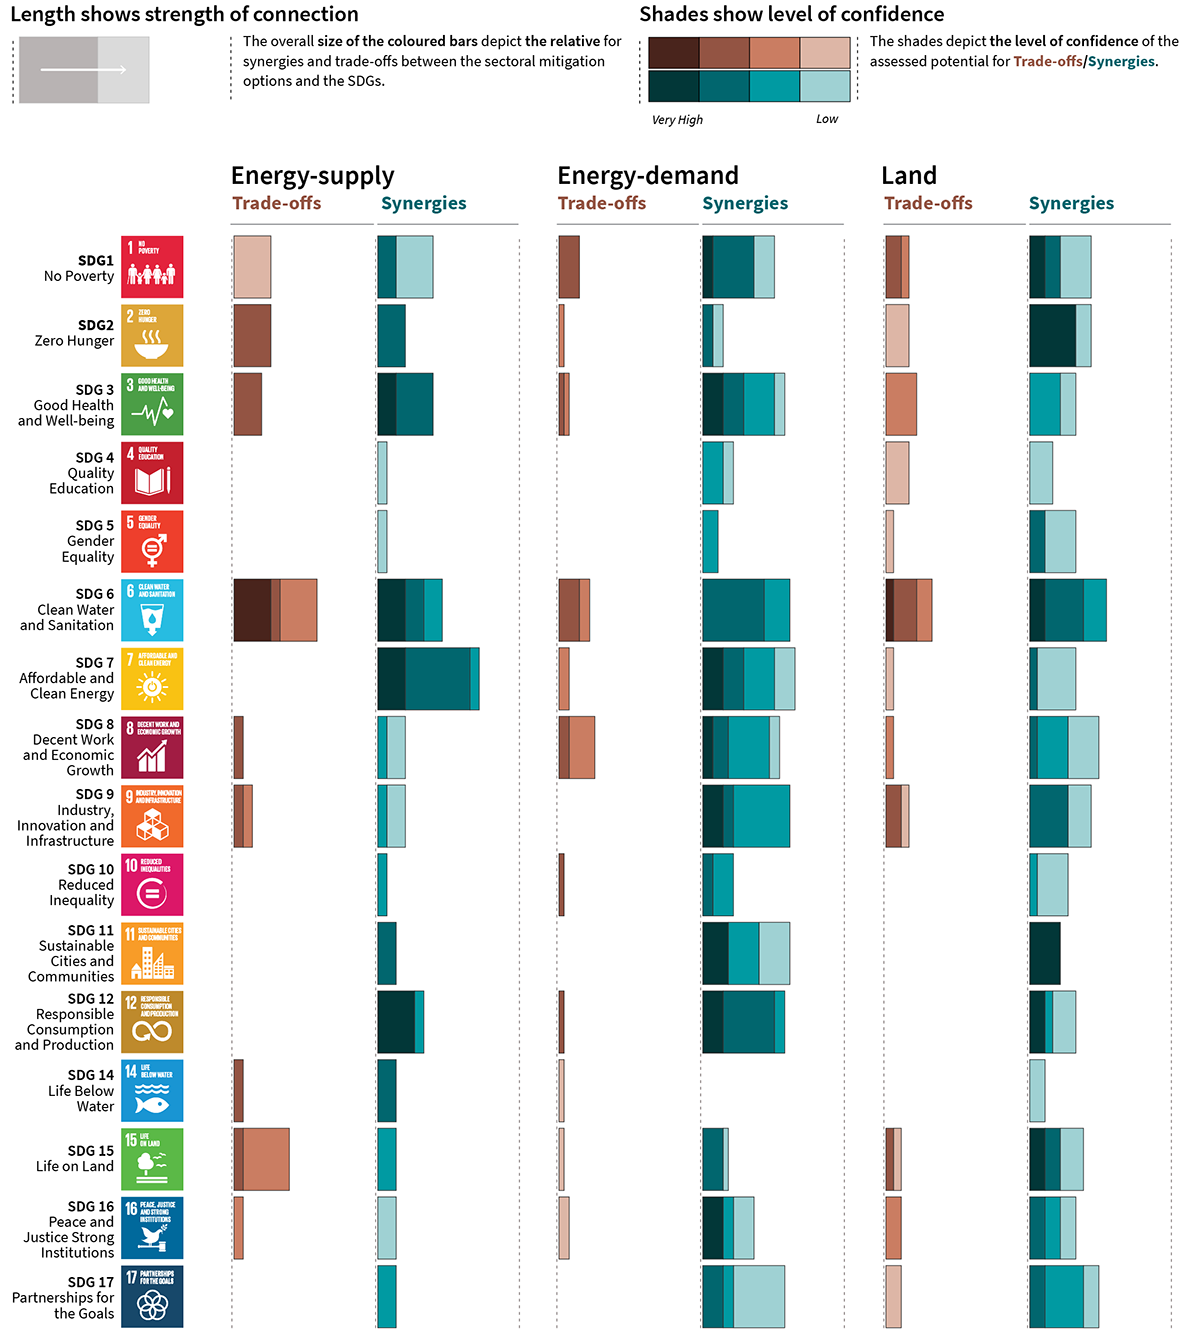 Benefits and trade-offs of limiting global warming to 1.5 °C for different categories of development goals.